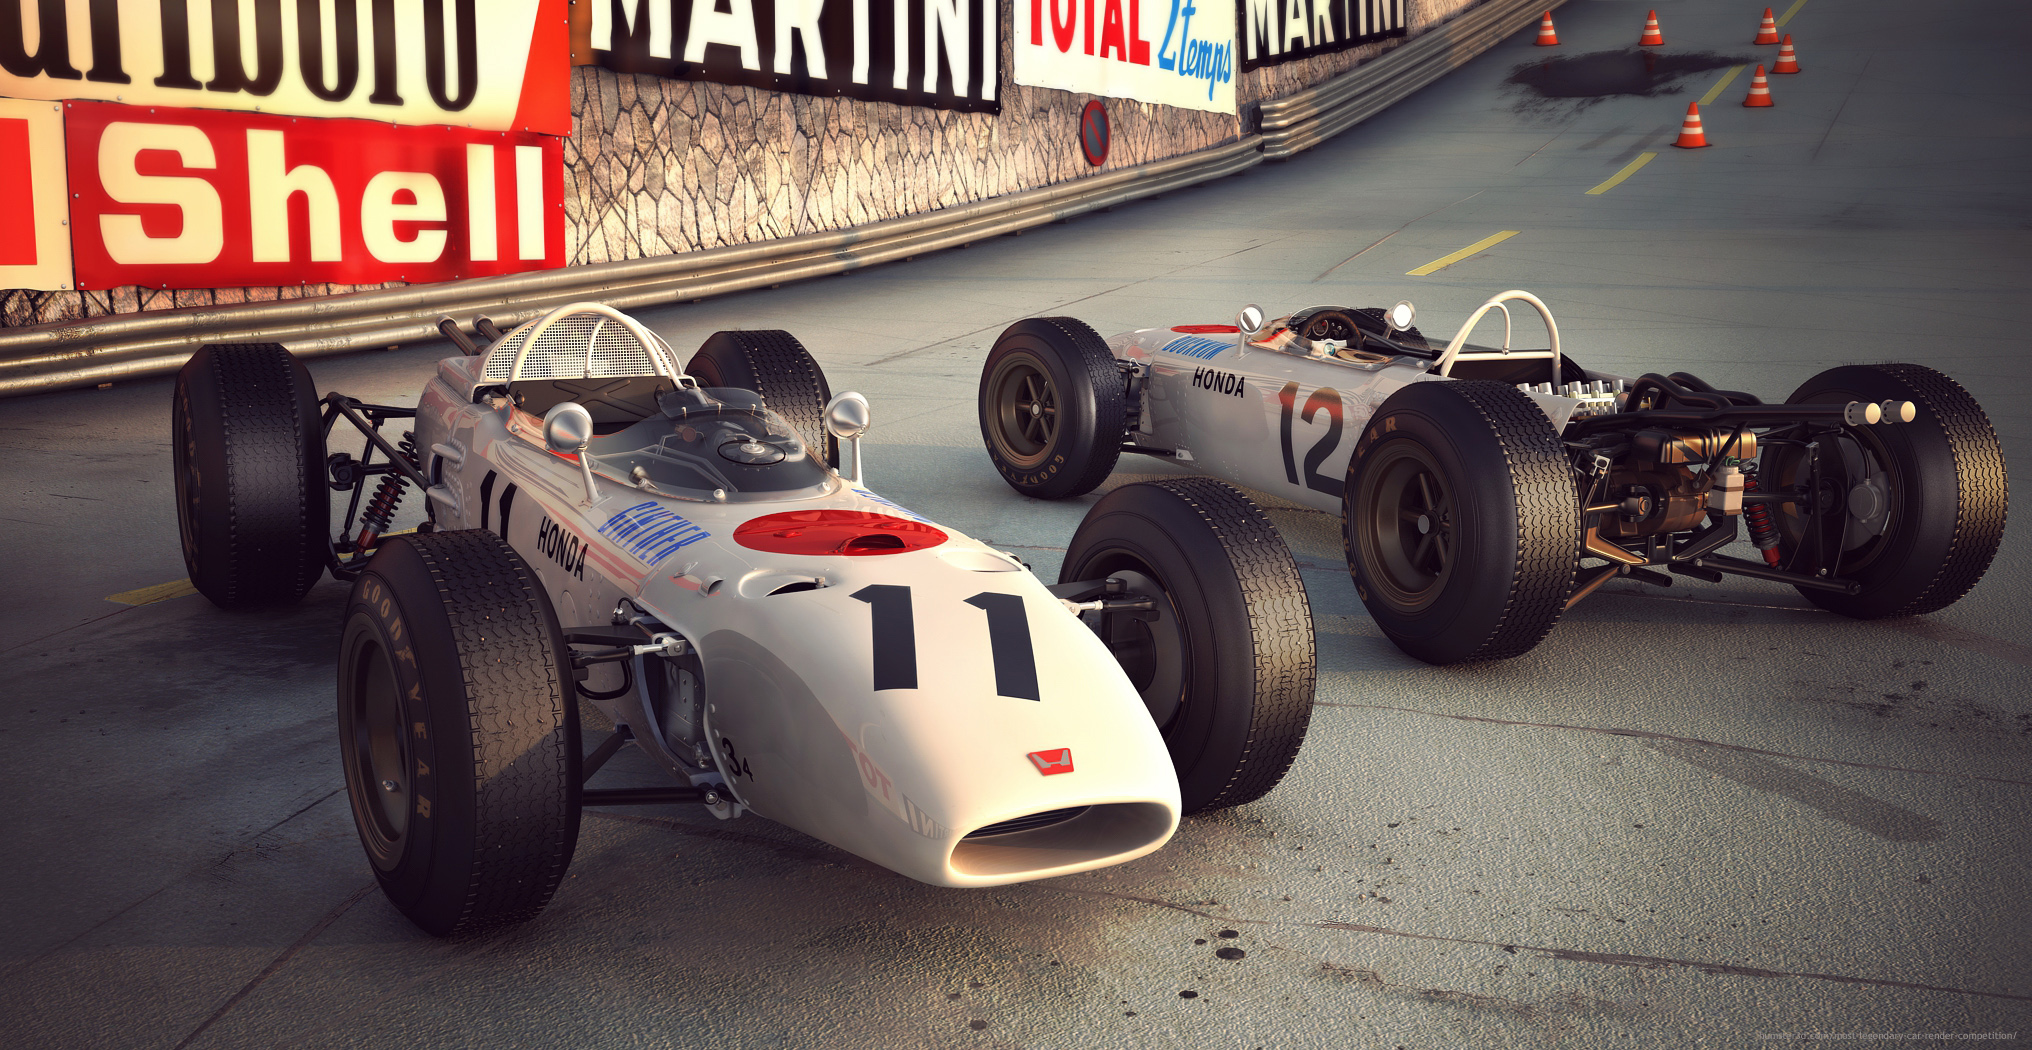 Hondas first Formula One race car won in 1965